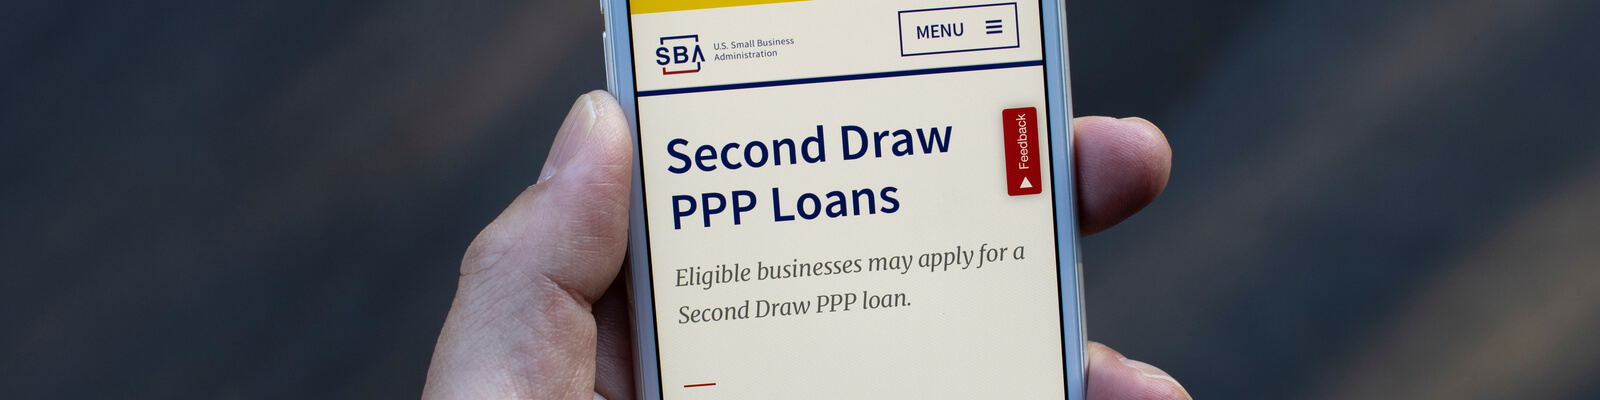 PPP Second Draw: Eligibility & How to Apply in February 2021